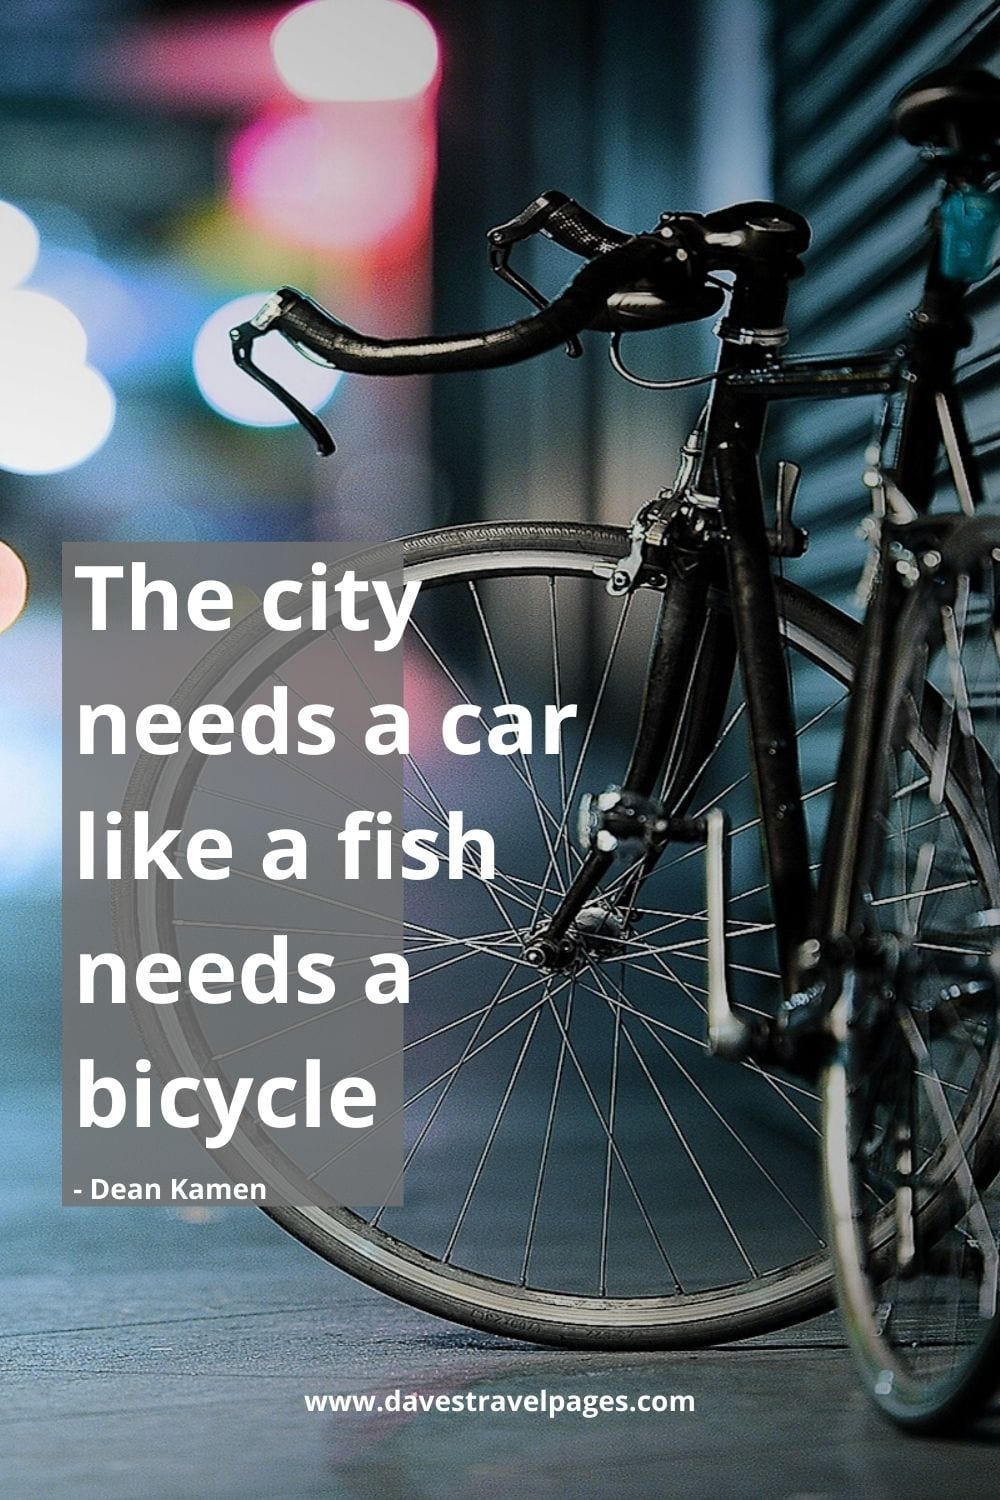 Funny bicycle quote - The city needs a car like a fish needs a bicycle. Dean Kamen